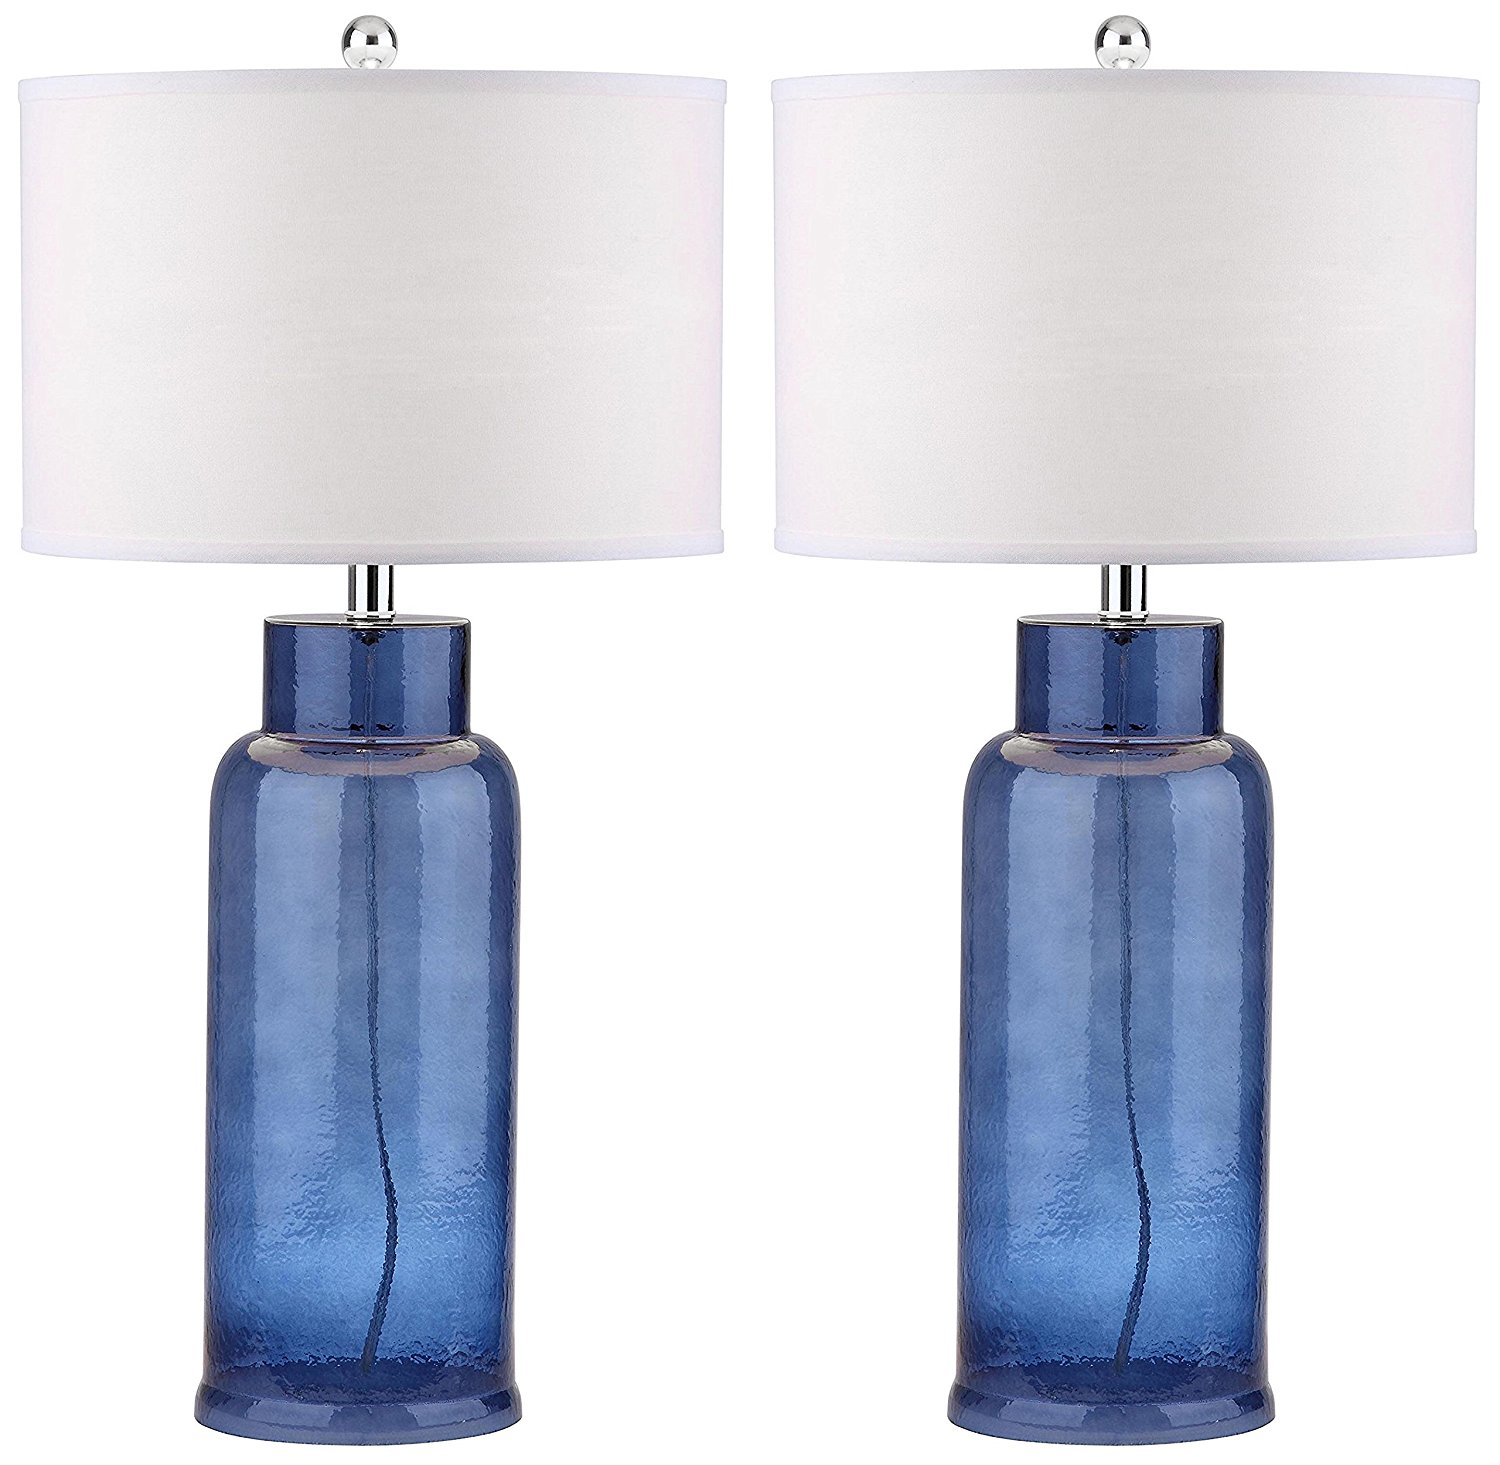 Cheap Glass Bottle Table Lamp Find Glass Bottle Table Lamp Deals On